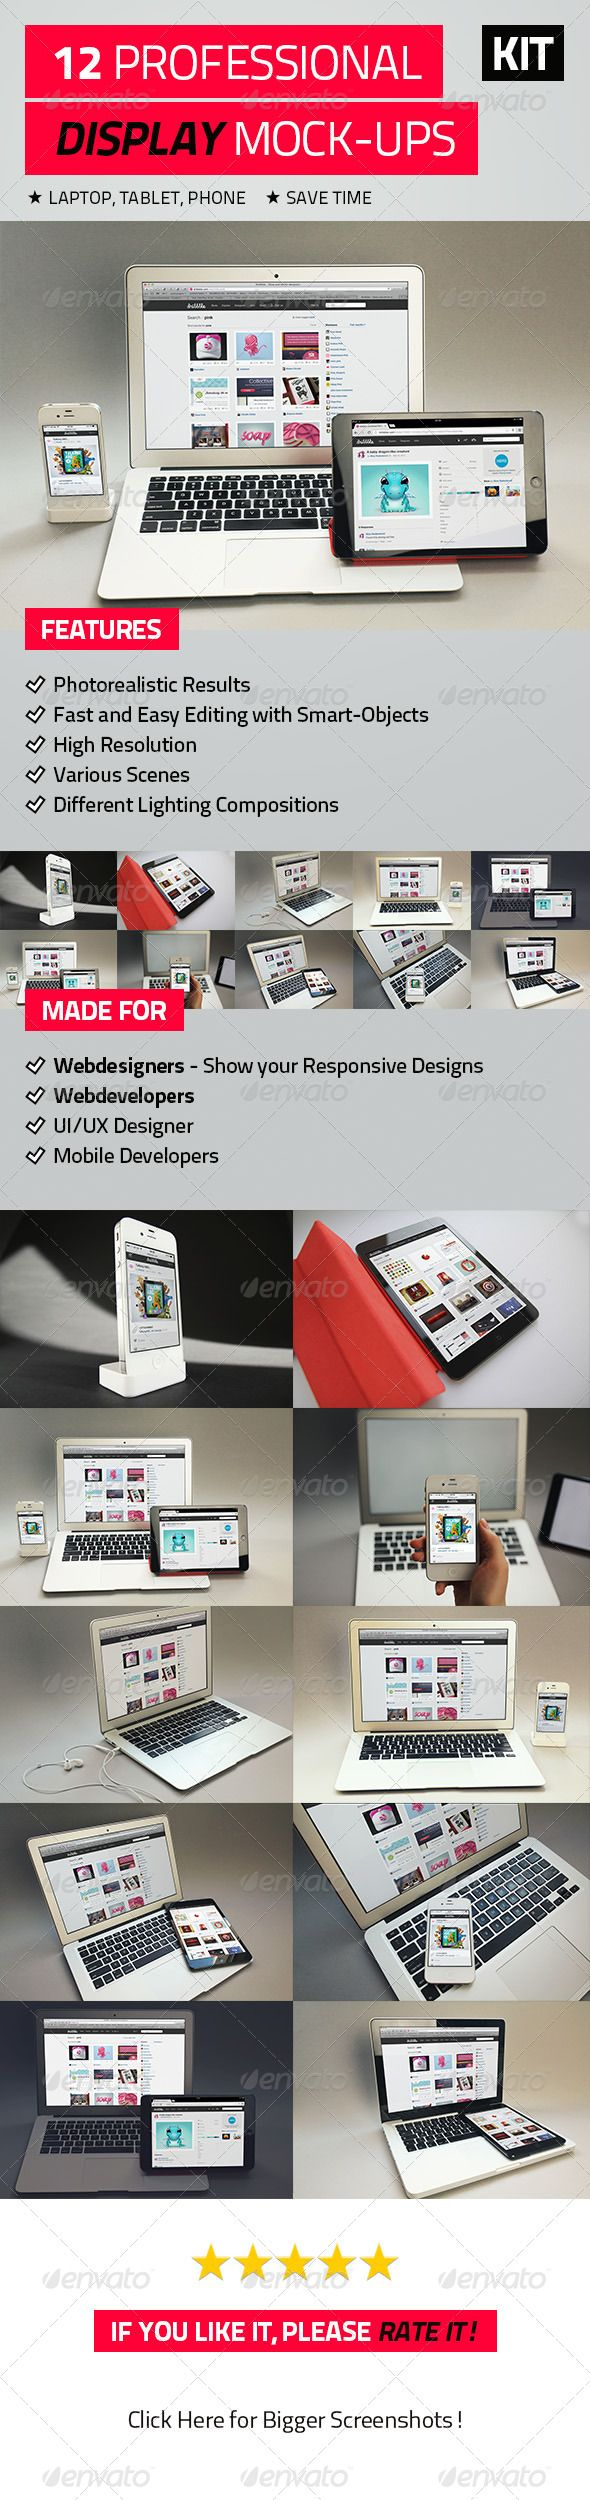 12 Professional Display Mock-Ups  #GraphicRiver        12 Professional Display Mock-Ups. Made for webdesigners, mobile-app designers/developers and mobile-app developers, to preview their designs, apps and websites in a professional and in the most photorealistic way.   Features     12 different Mock-Ups   iPad Mini – Black, iPhone 4S, MacBook Pro, MacBook Air/li>   Completely customizable mock-ups. (layered PSD-file)   Very high resolution: 5182×3456 px   Different angles   Easy to use with…